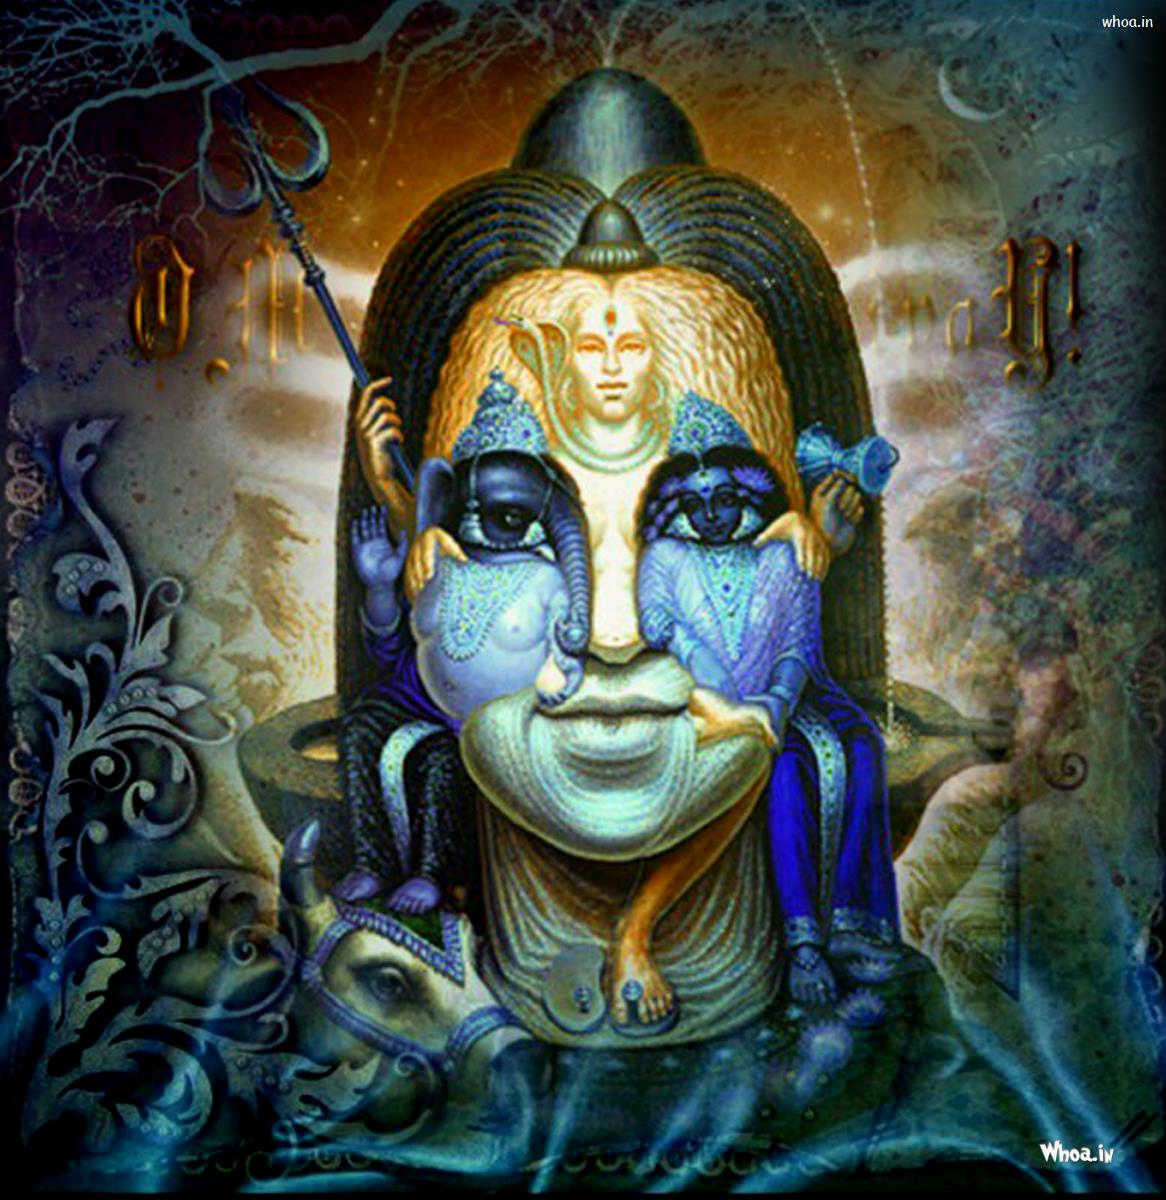 Lord Shiva Wallpaper HD Desktop